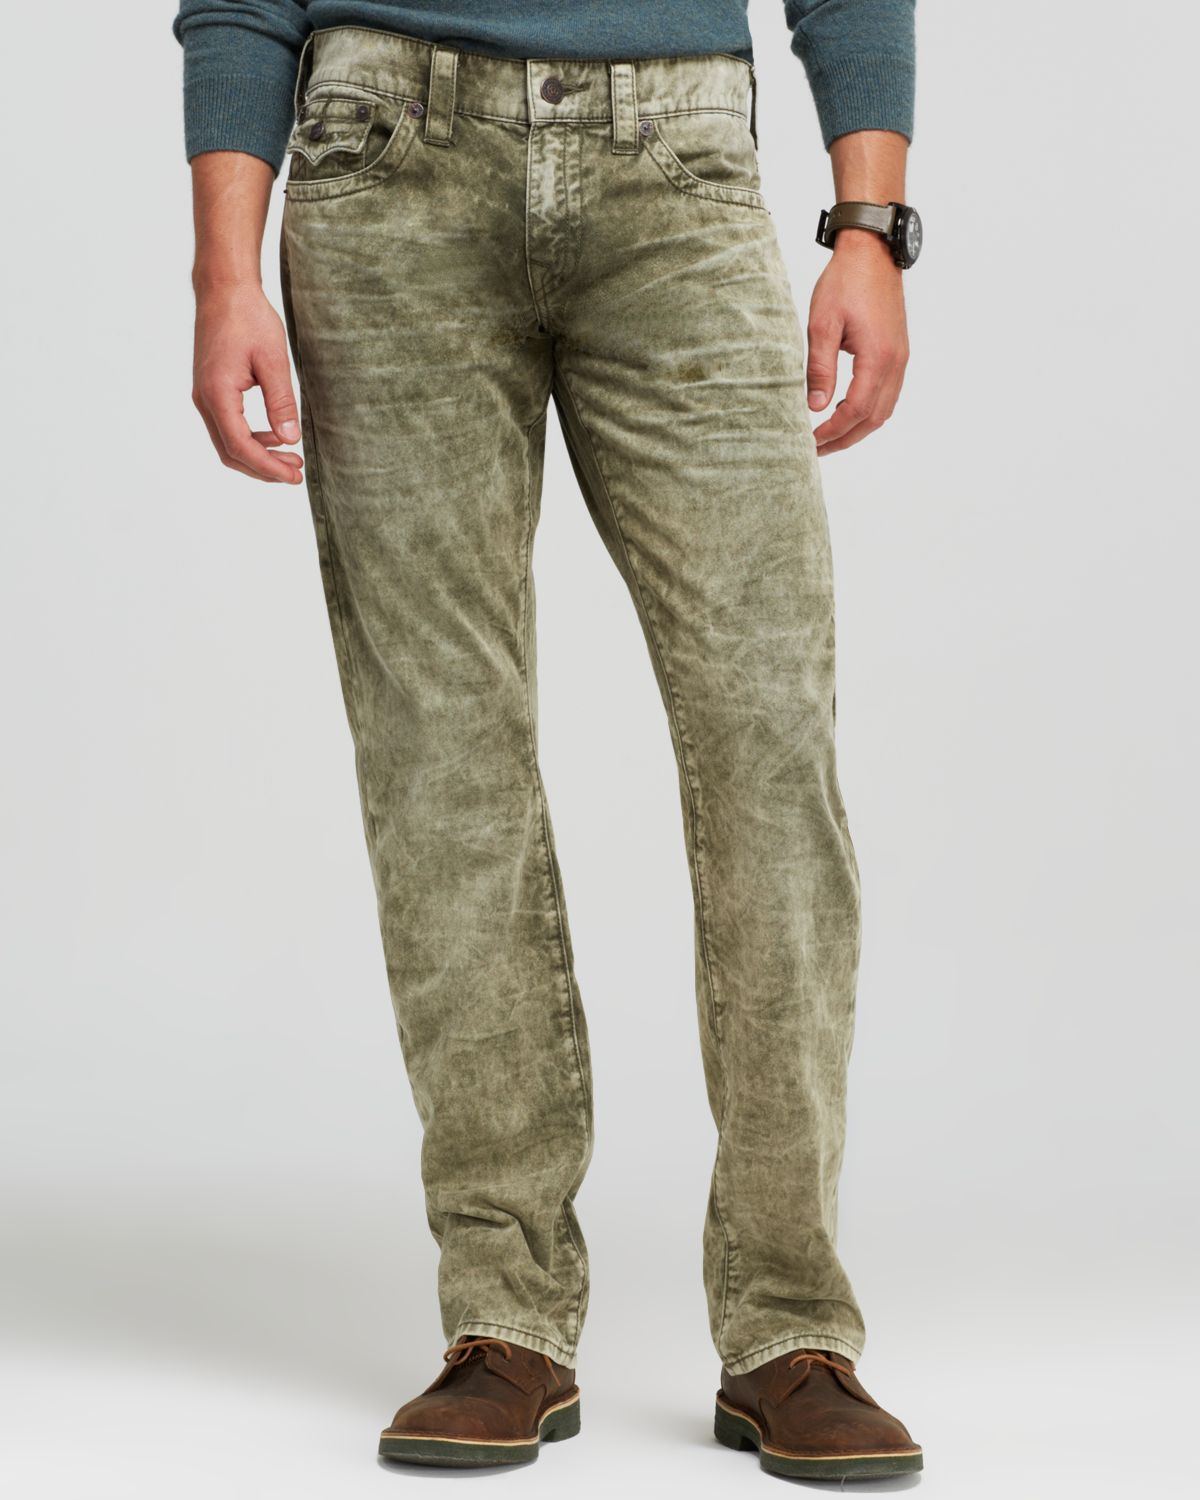 Lyst - True Religion Jeans - Ricky Straight Fit In Ceder ...